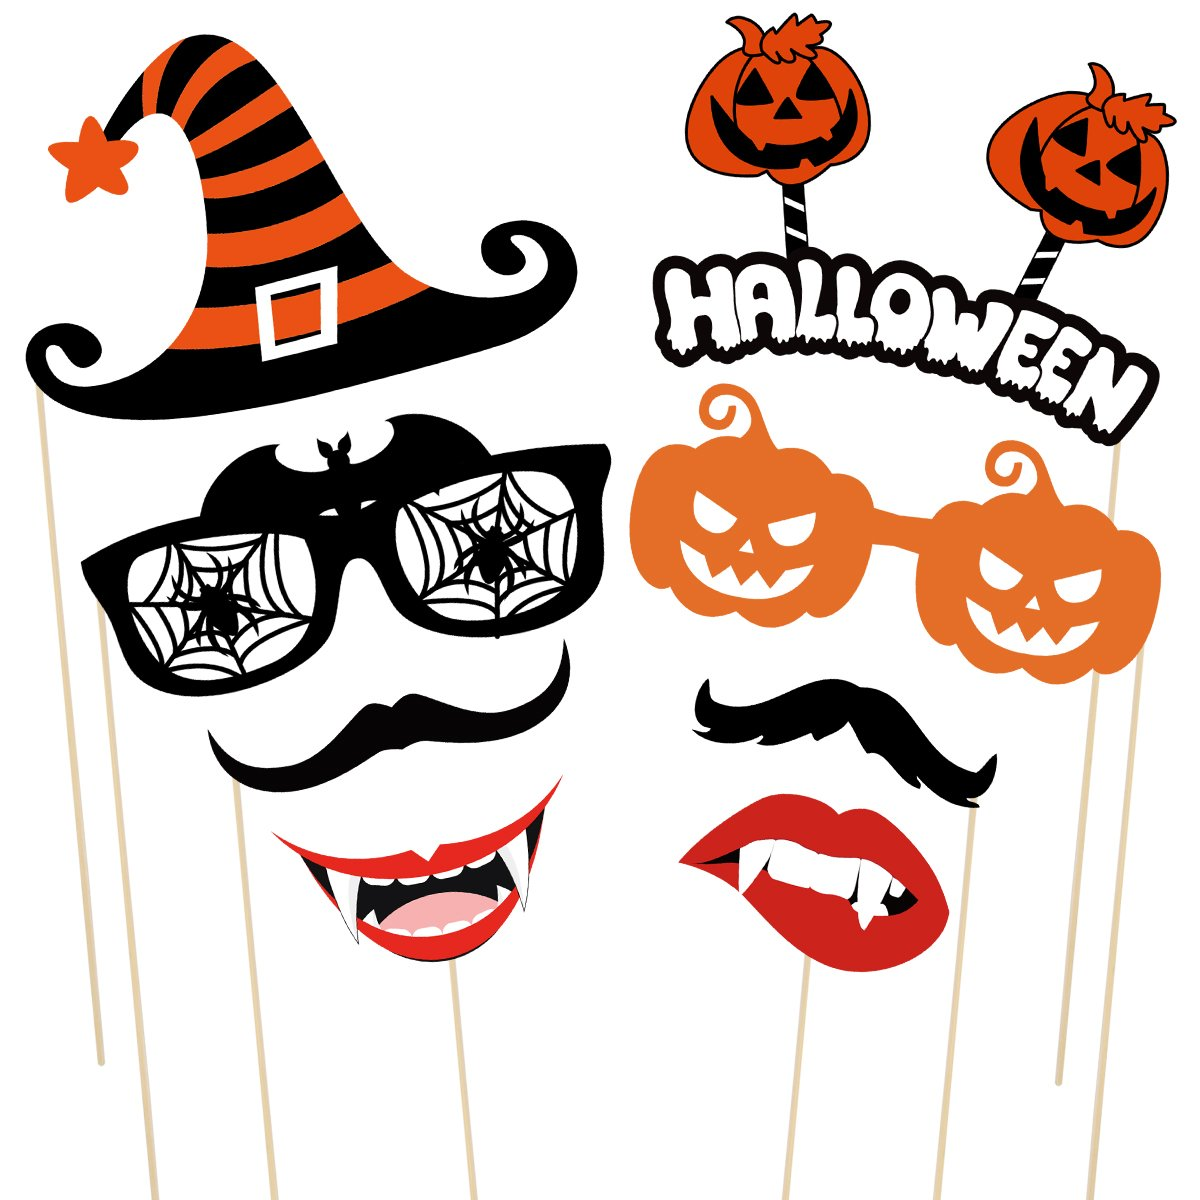 LUOEM 47pcs Halloween Photo Booth Props Creative Halloween Pose DIY Selfie Props for Happy Halloween Party Decorations Supply